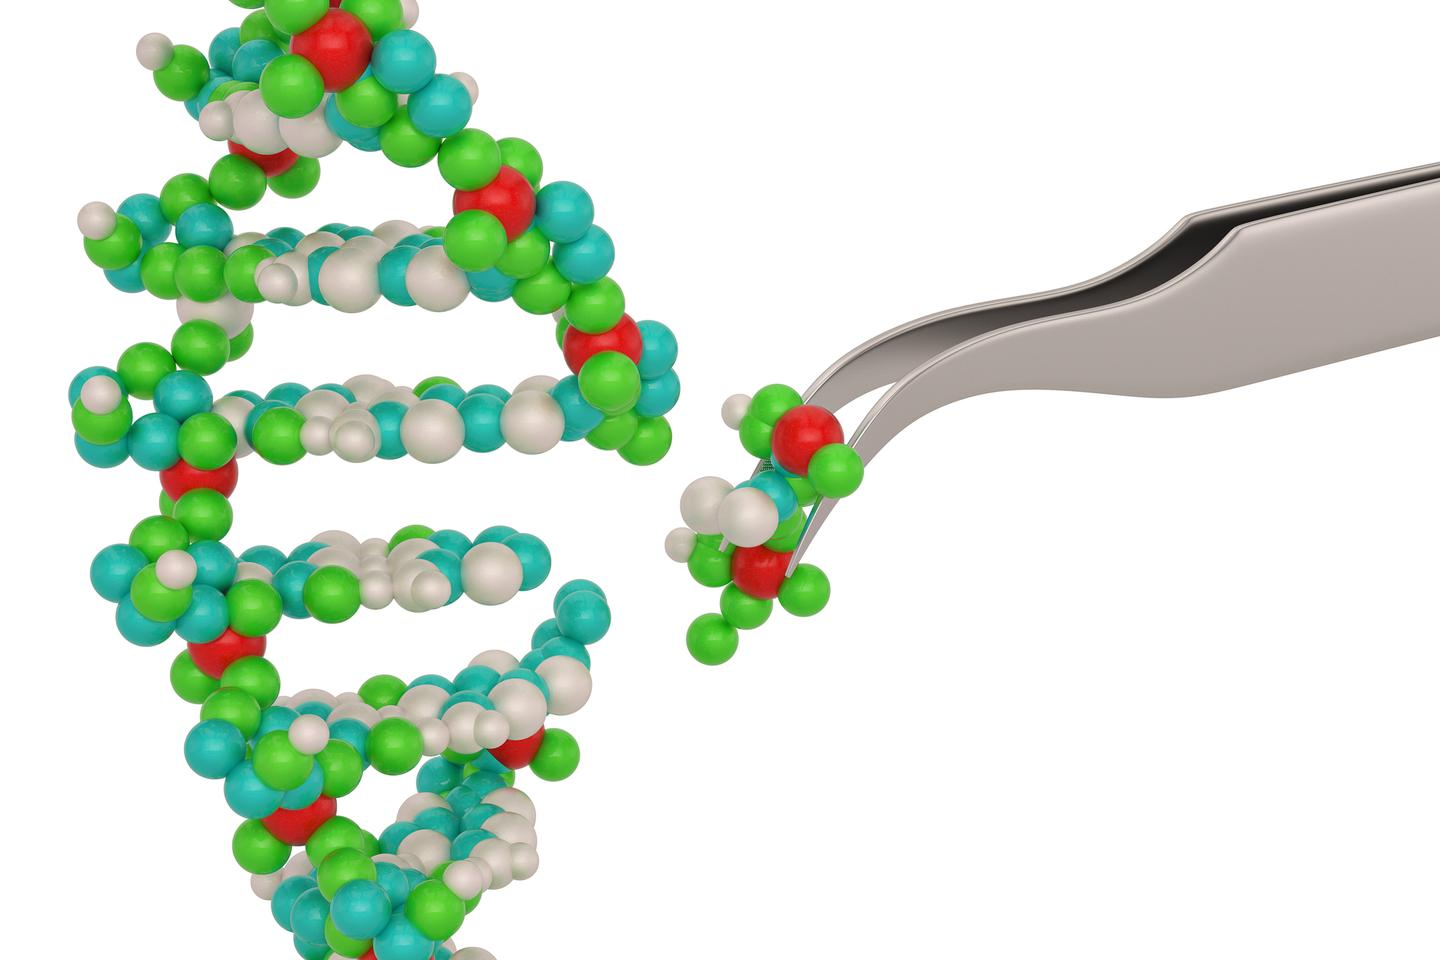 Stanford researchers have developed a new CRISPR gene-editing tool called CasMINI, which is smaller than existing versions so it can enter human cells more easily